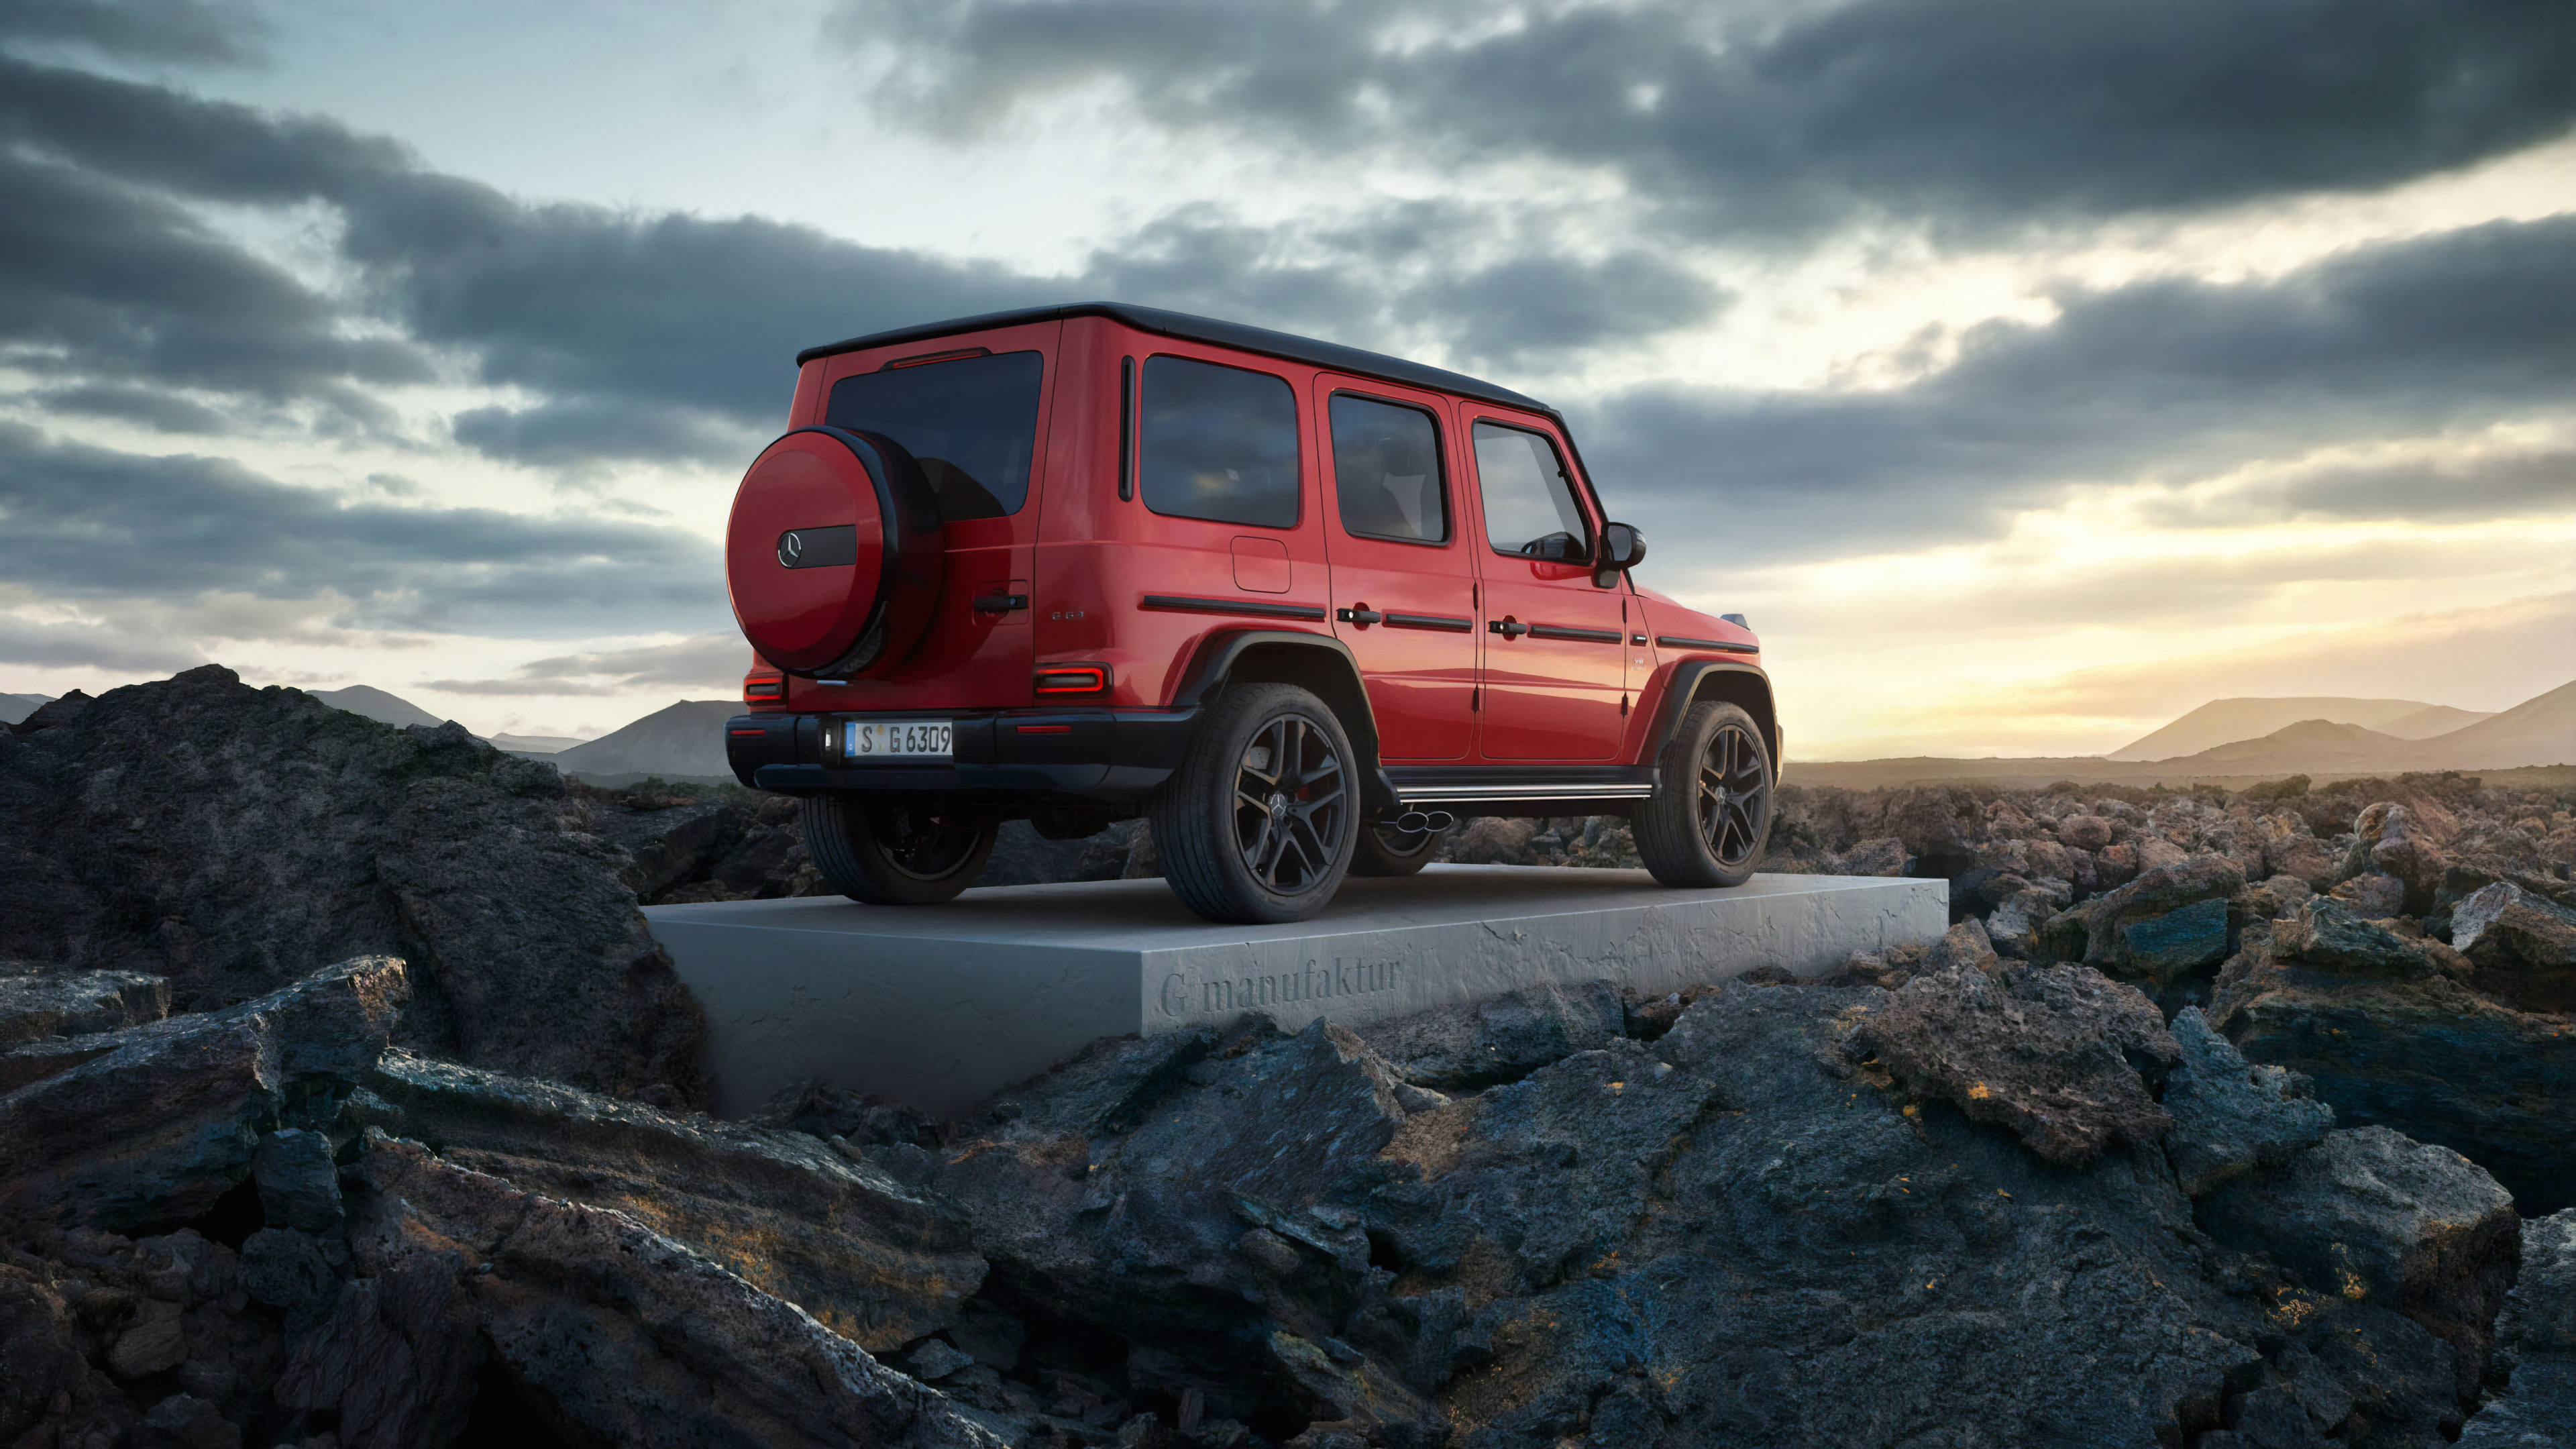 mercedes g wagon 1569188207 - Mercedes G Wagon - suv wallpapers, mercedes wallpapers, mercedes g class wallpapers, mercedes benz wallpapers, hd-wallpapers, cars wallpapers, 4k-wallpapers